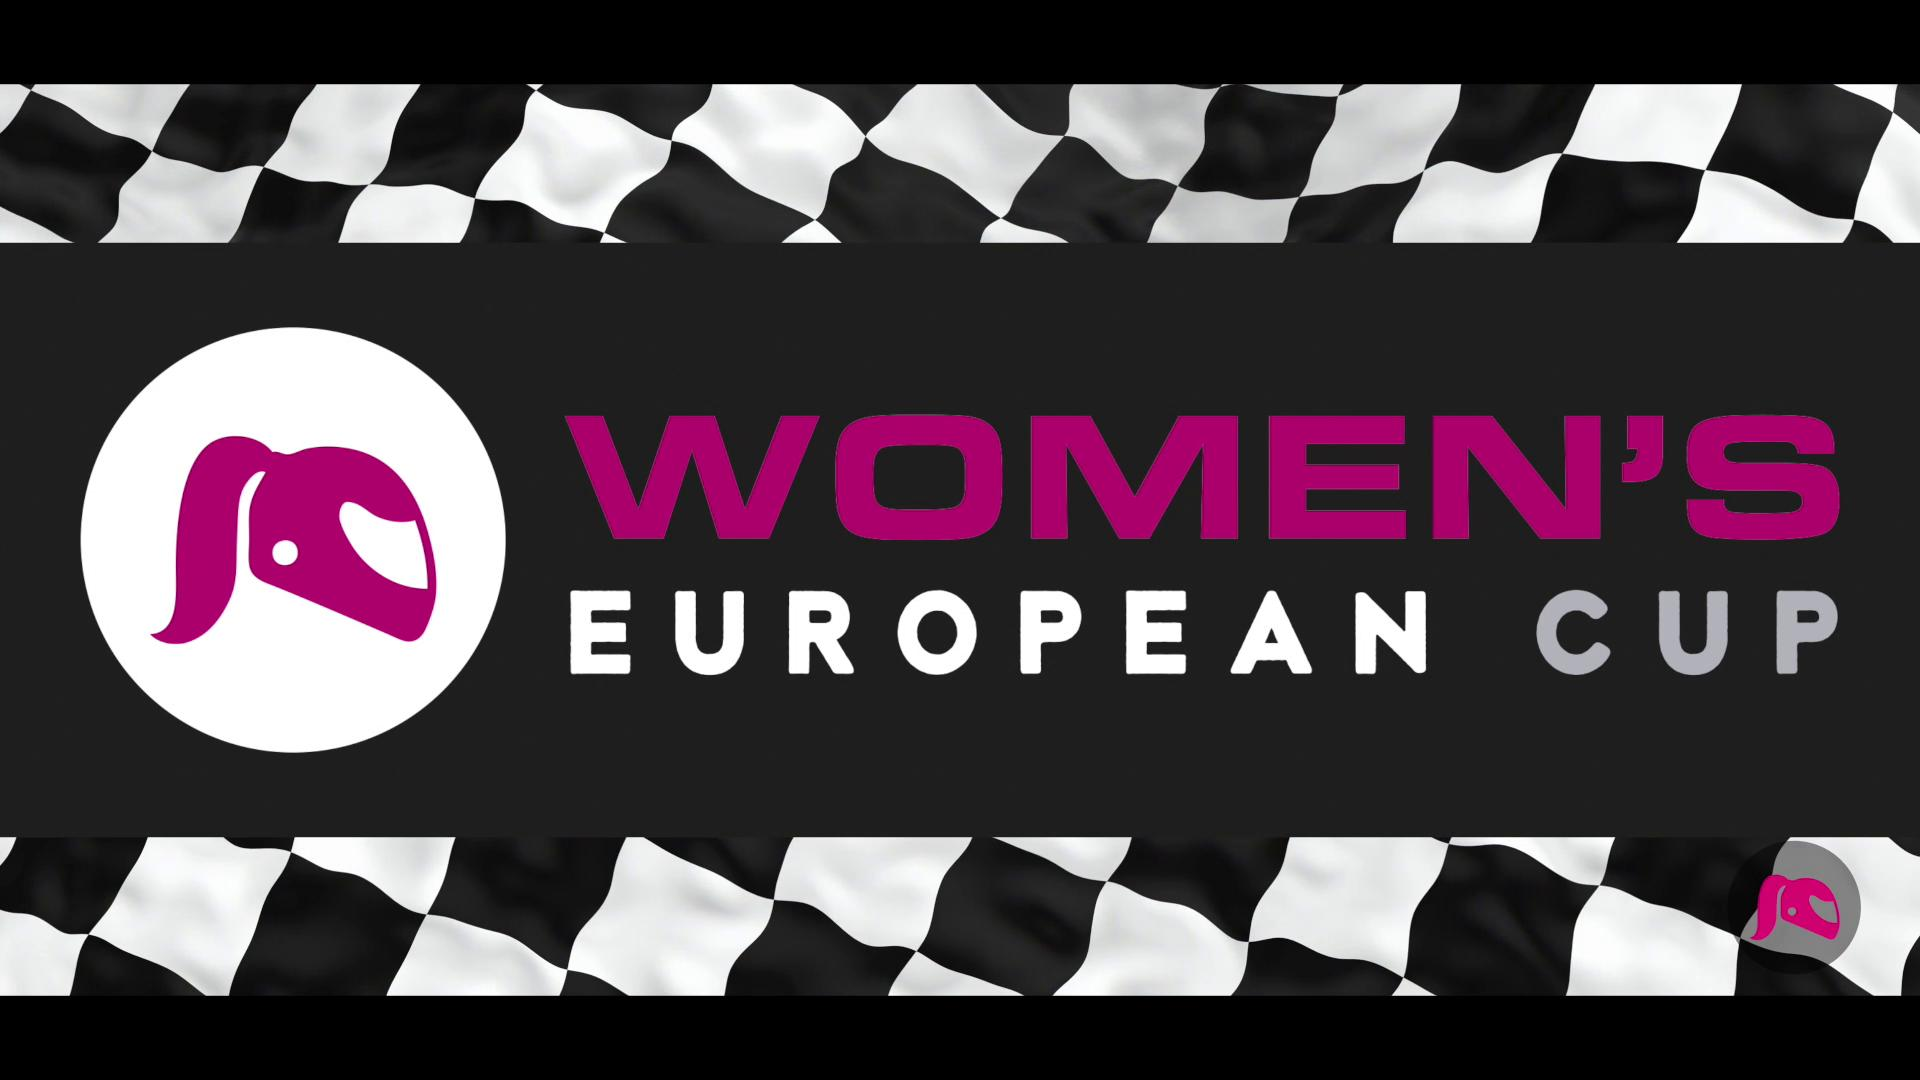 Women's European Cup - Video